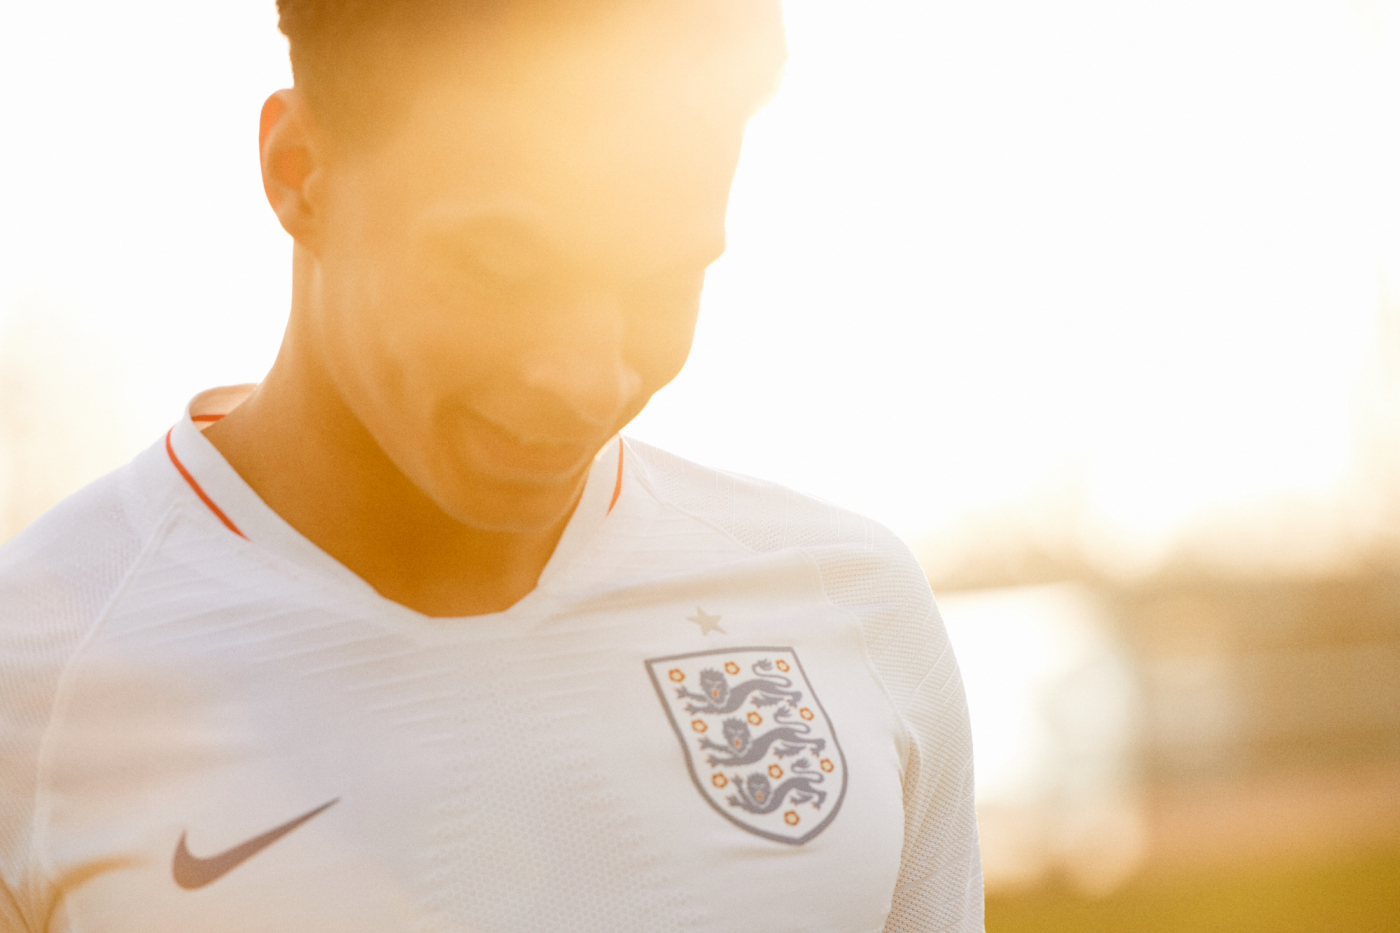 Dominic Marley photographs Dele Alli for Nike England campaign